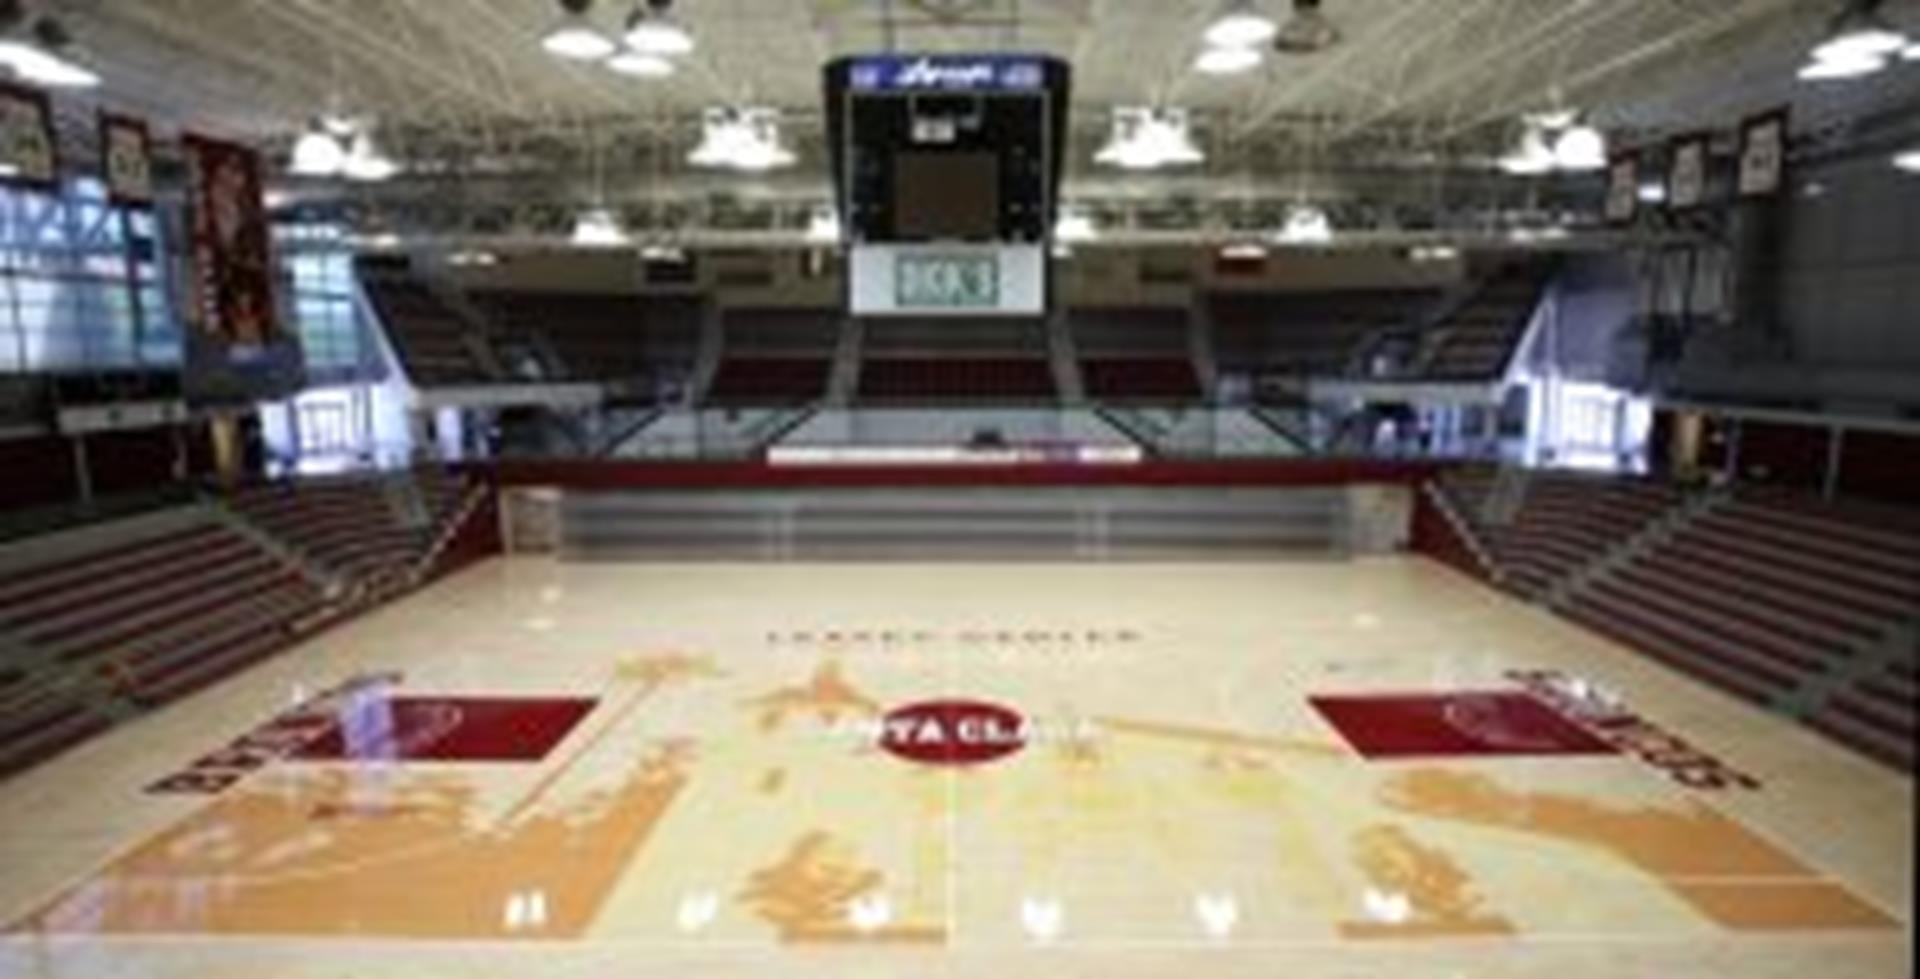 LEAVEY CENTER - INTERIOR